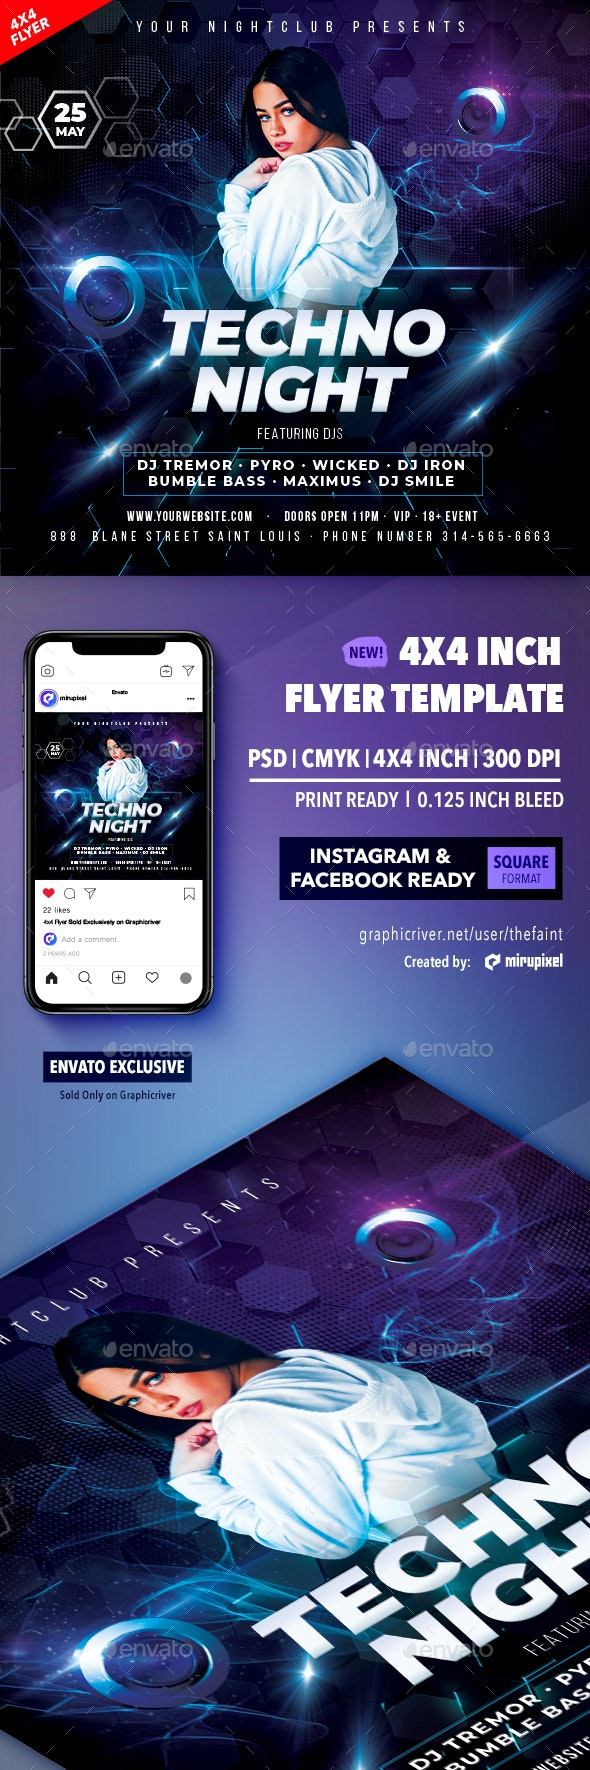 Techno Night 4x4 Inch Flyer Template - Clubs & Parties Events